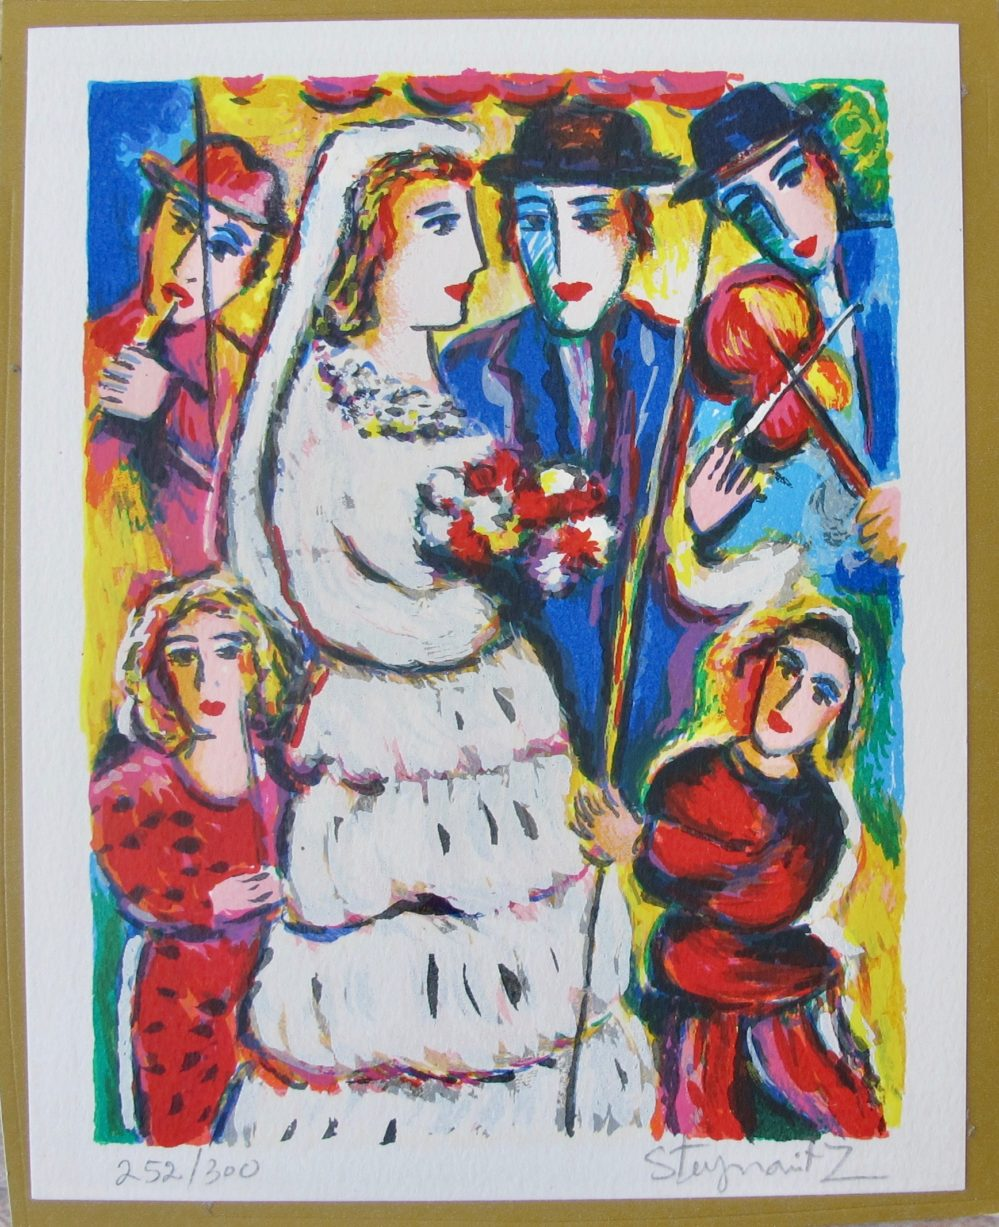 "ZAMY STEYNOVITZ ""WEDDING SERENADE"" Hand Signed Limited Edition Lithograph"